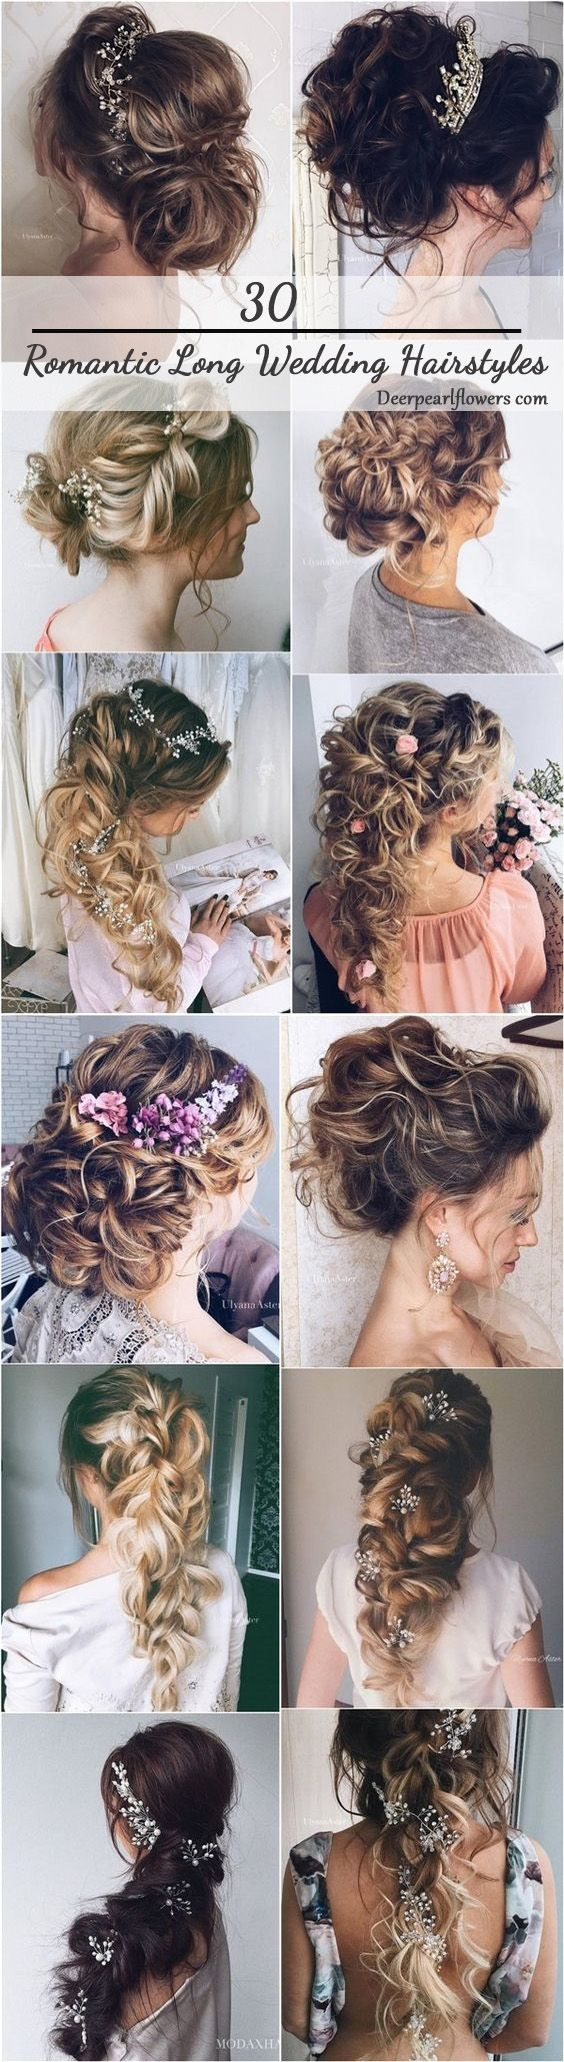 new romantic long bridal wedding hairstyles to try braids